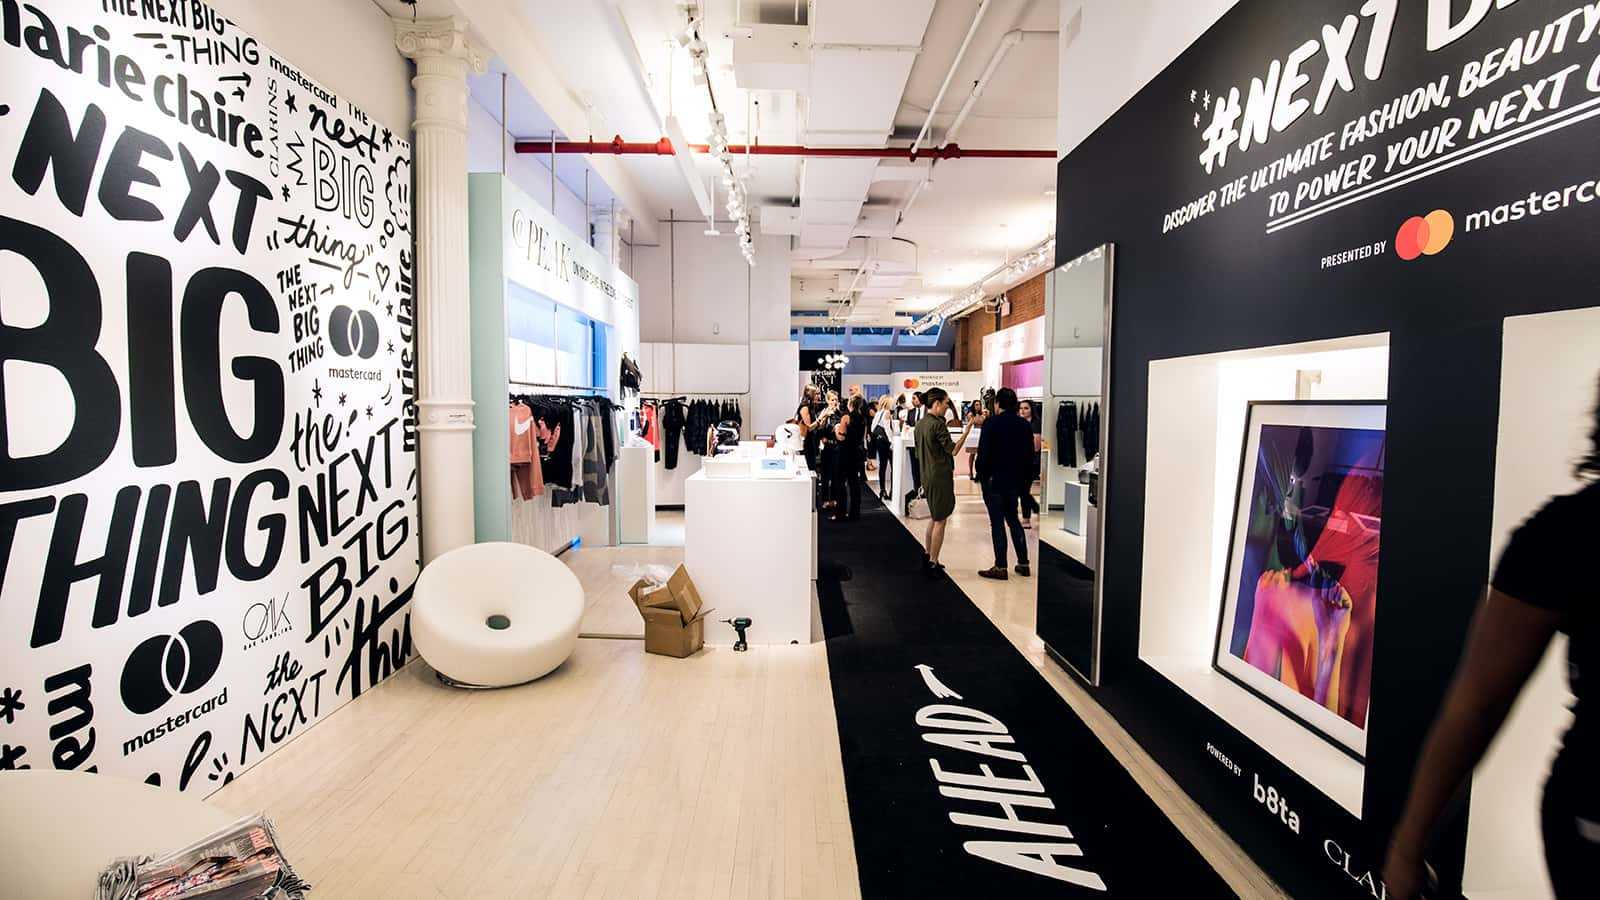 View from entrance at Marie Claire Next Big Thing Concept Shop in New York City 2017.